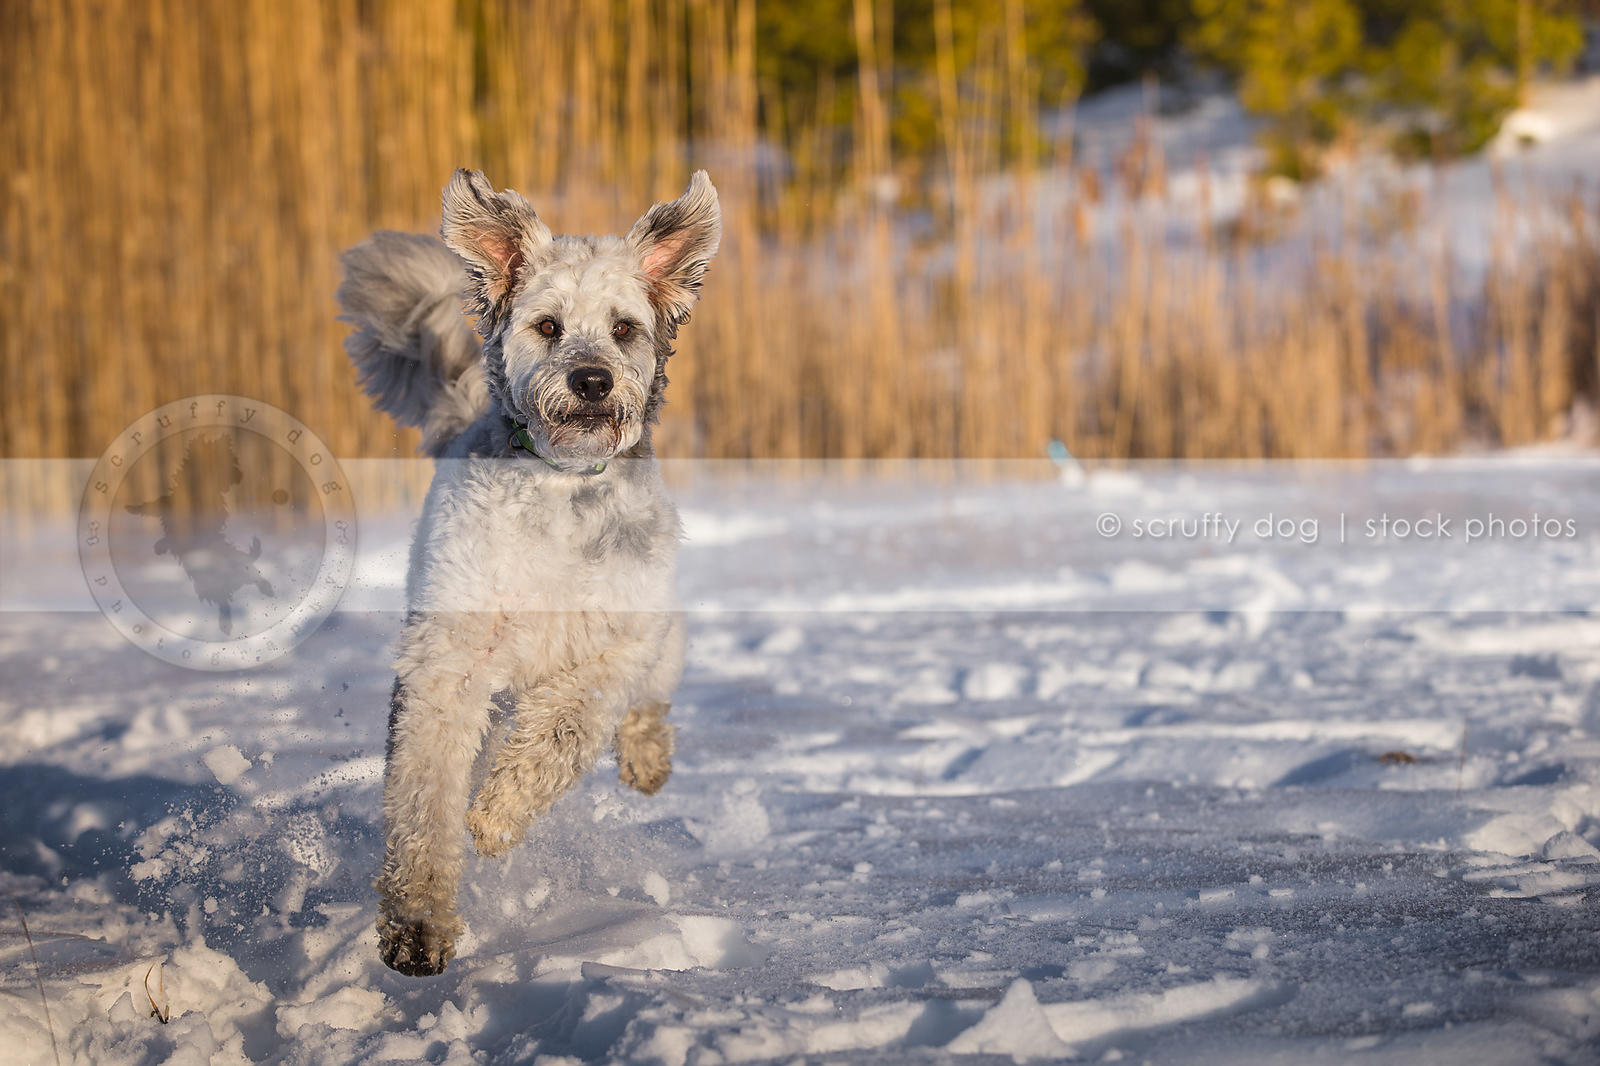 Stock Photo airborn silver and white doodle dog with ears